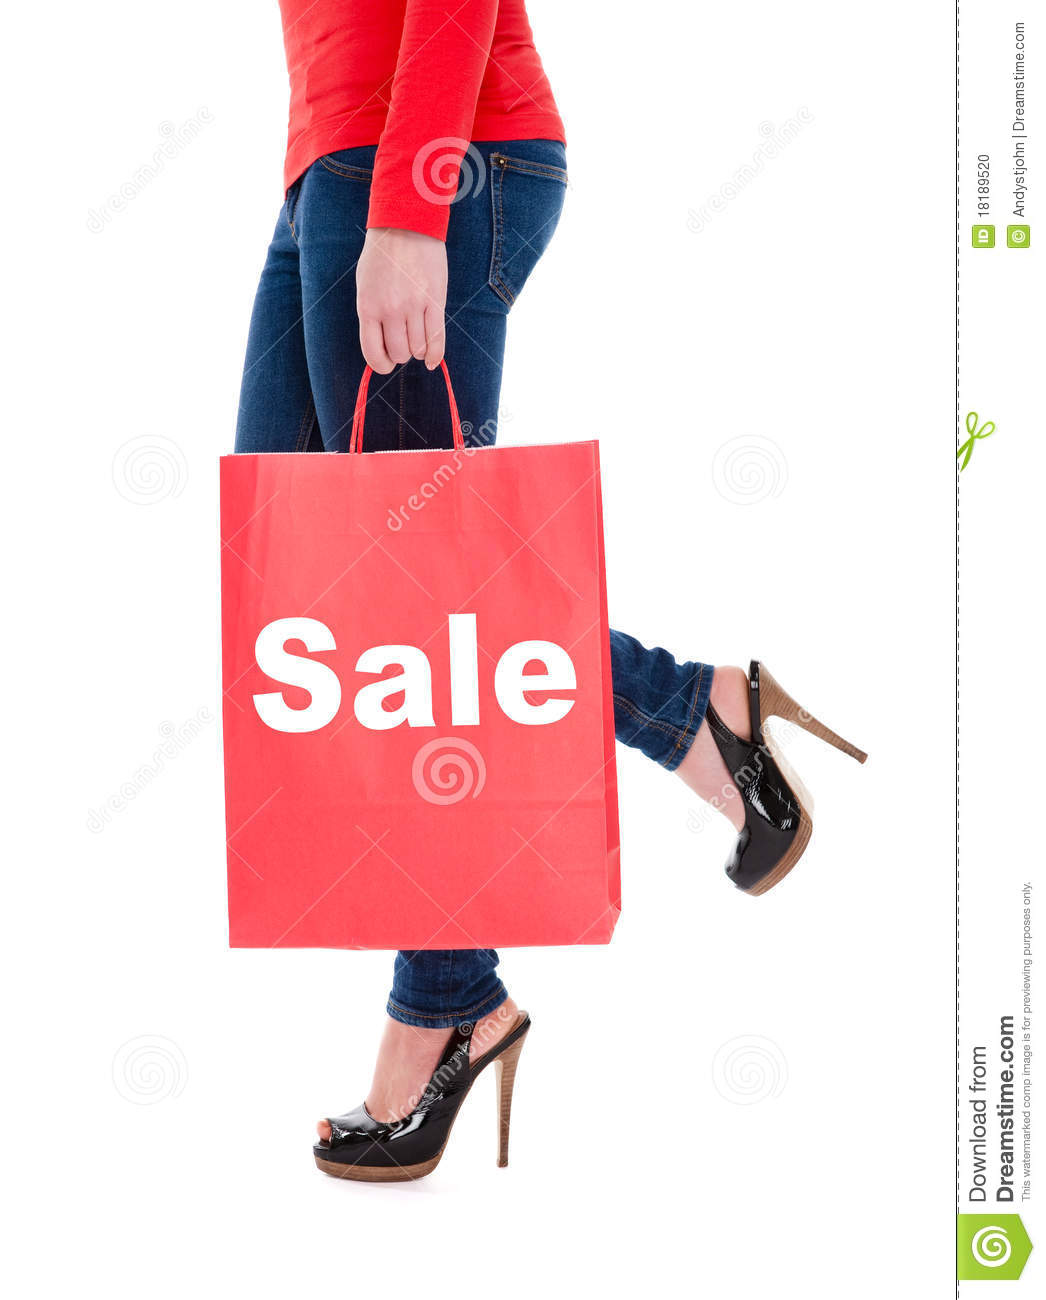 Woman Carrying Sale Shopping Bag Stock Photo - Image: 18189520